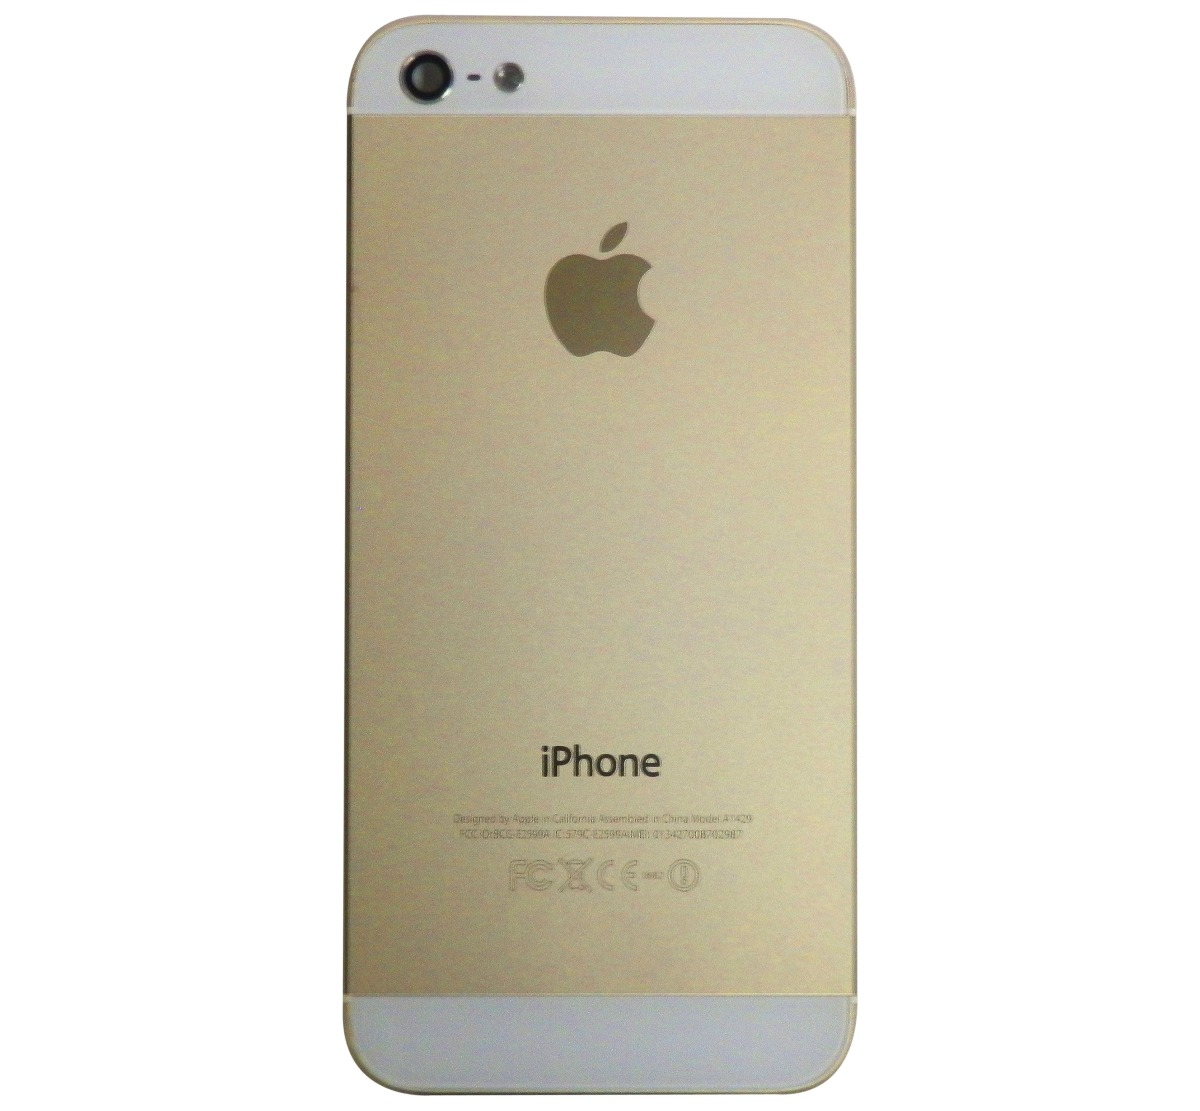 Phone House Iphone 5 Libre Carcasa Iphone 5 5g Dorada Con Botones 225 00 En